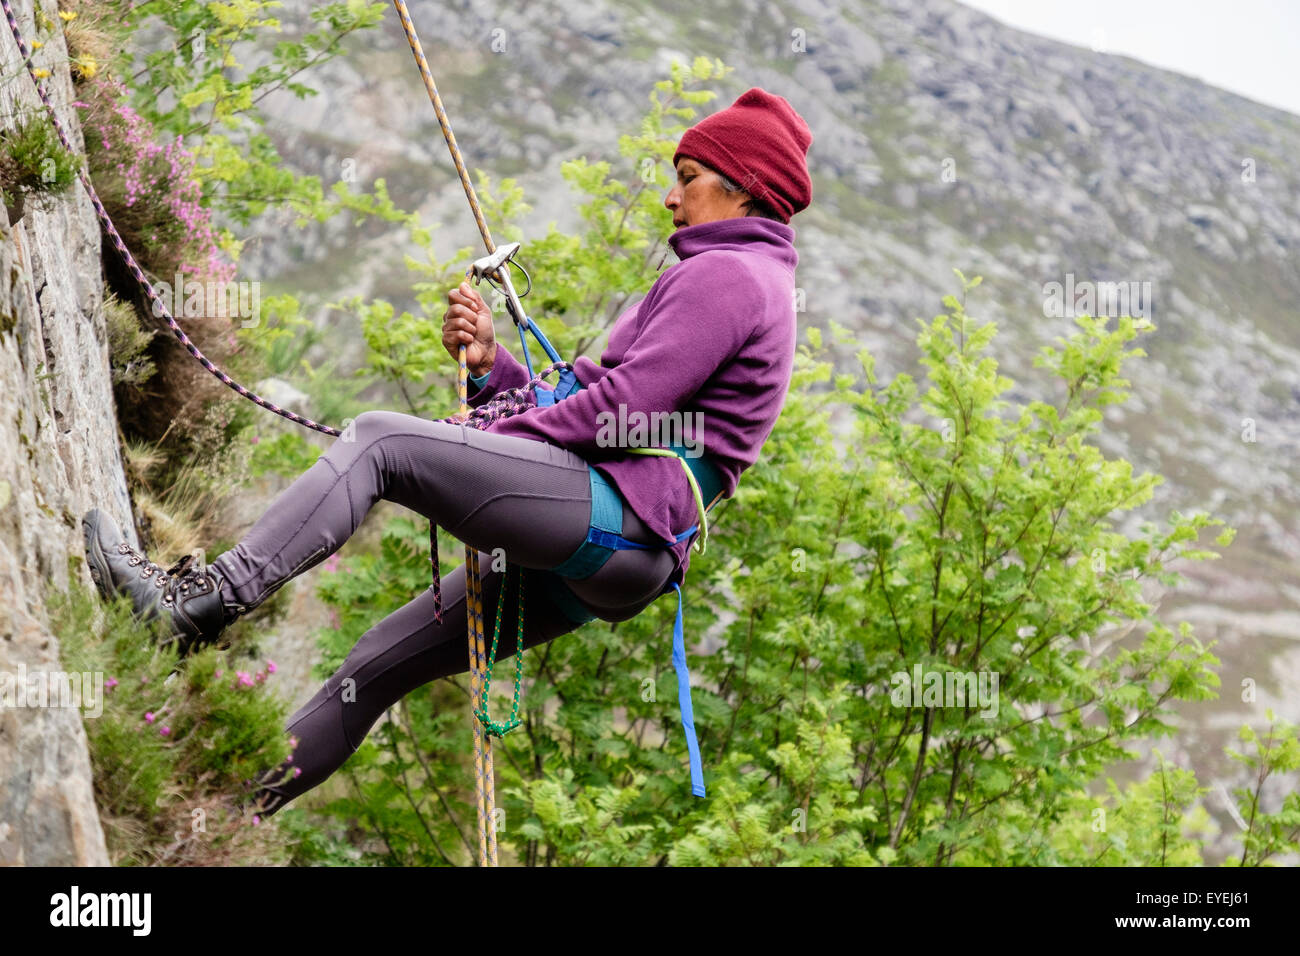 Female rock climber abseiling with a safety rope and climbing harness on a rockface. Ogwen, Snowdonia, North Wales, Stock Photo